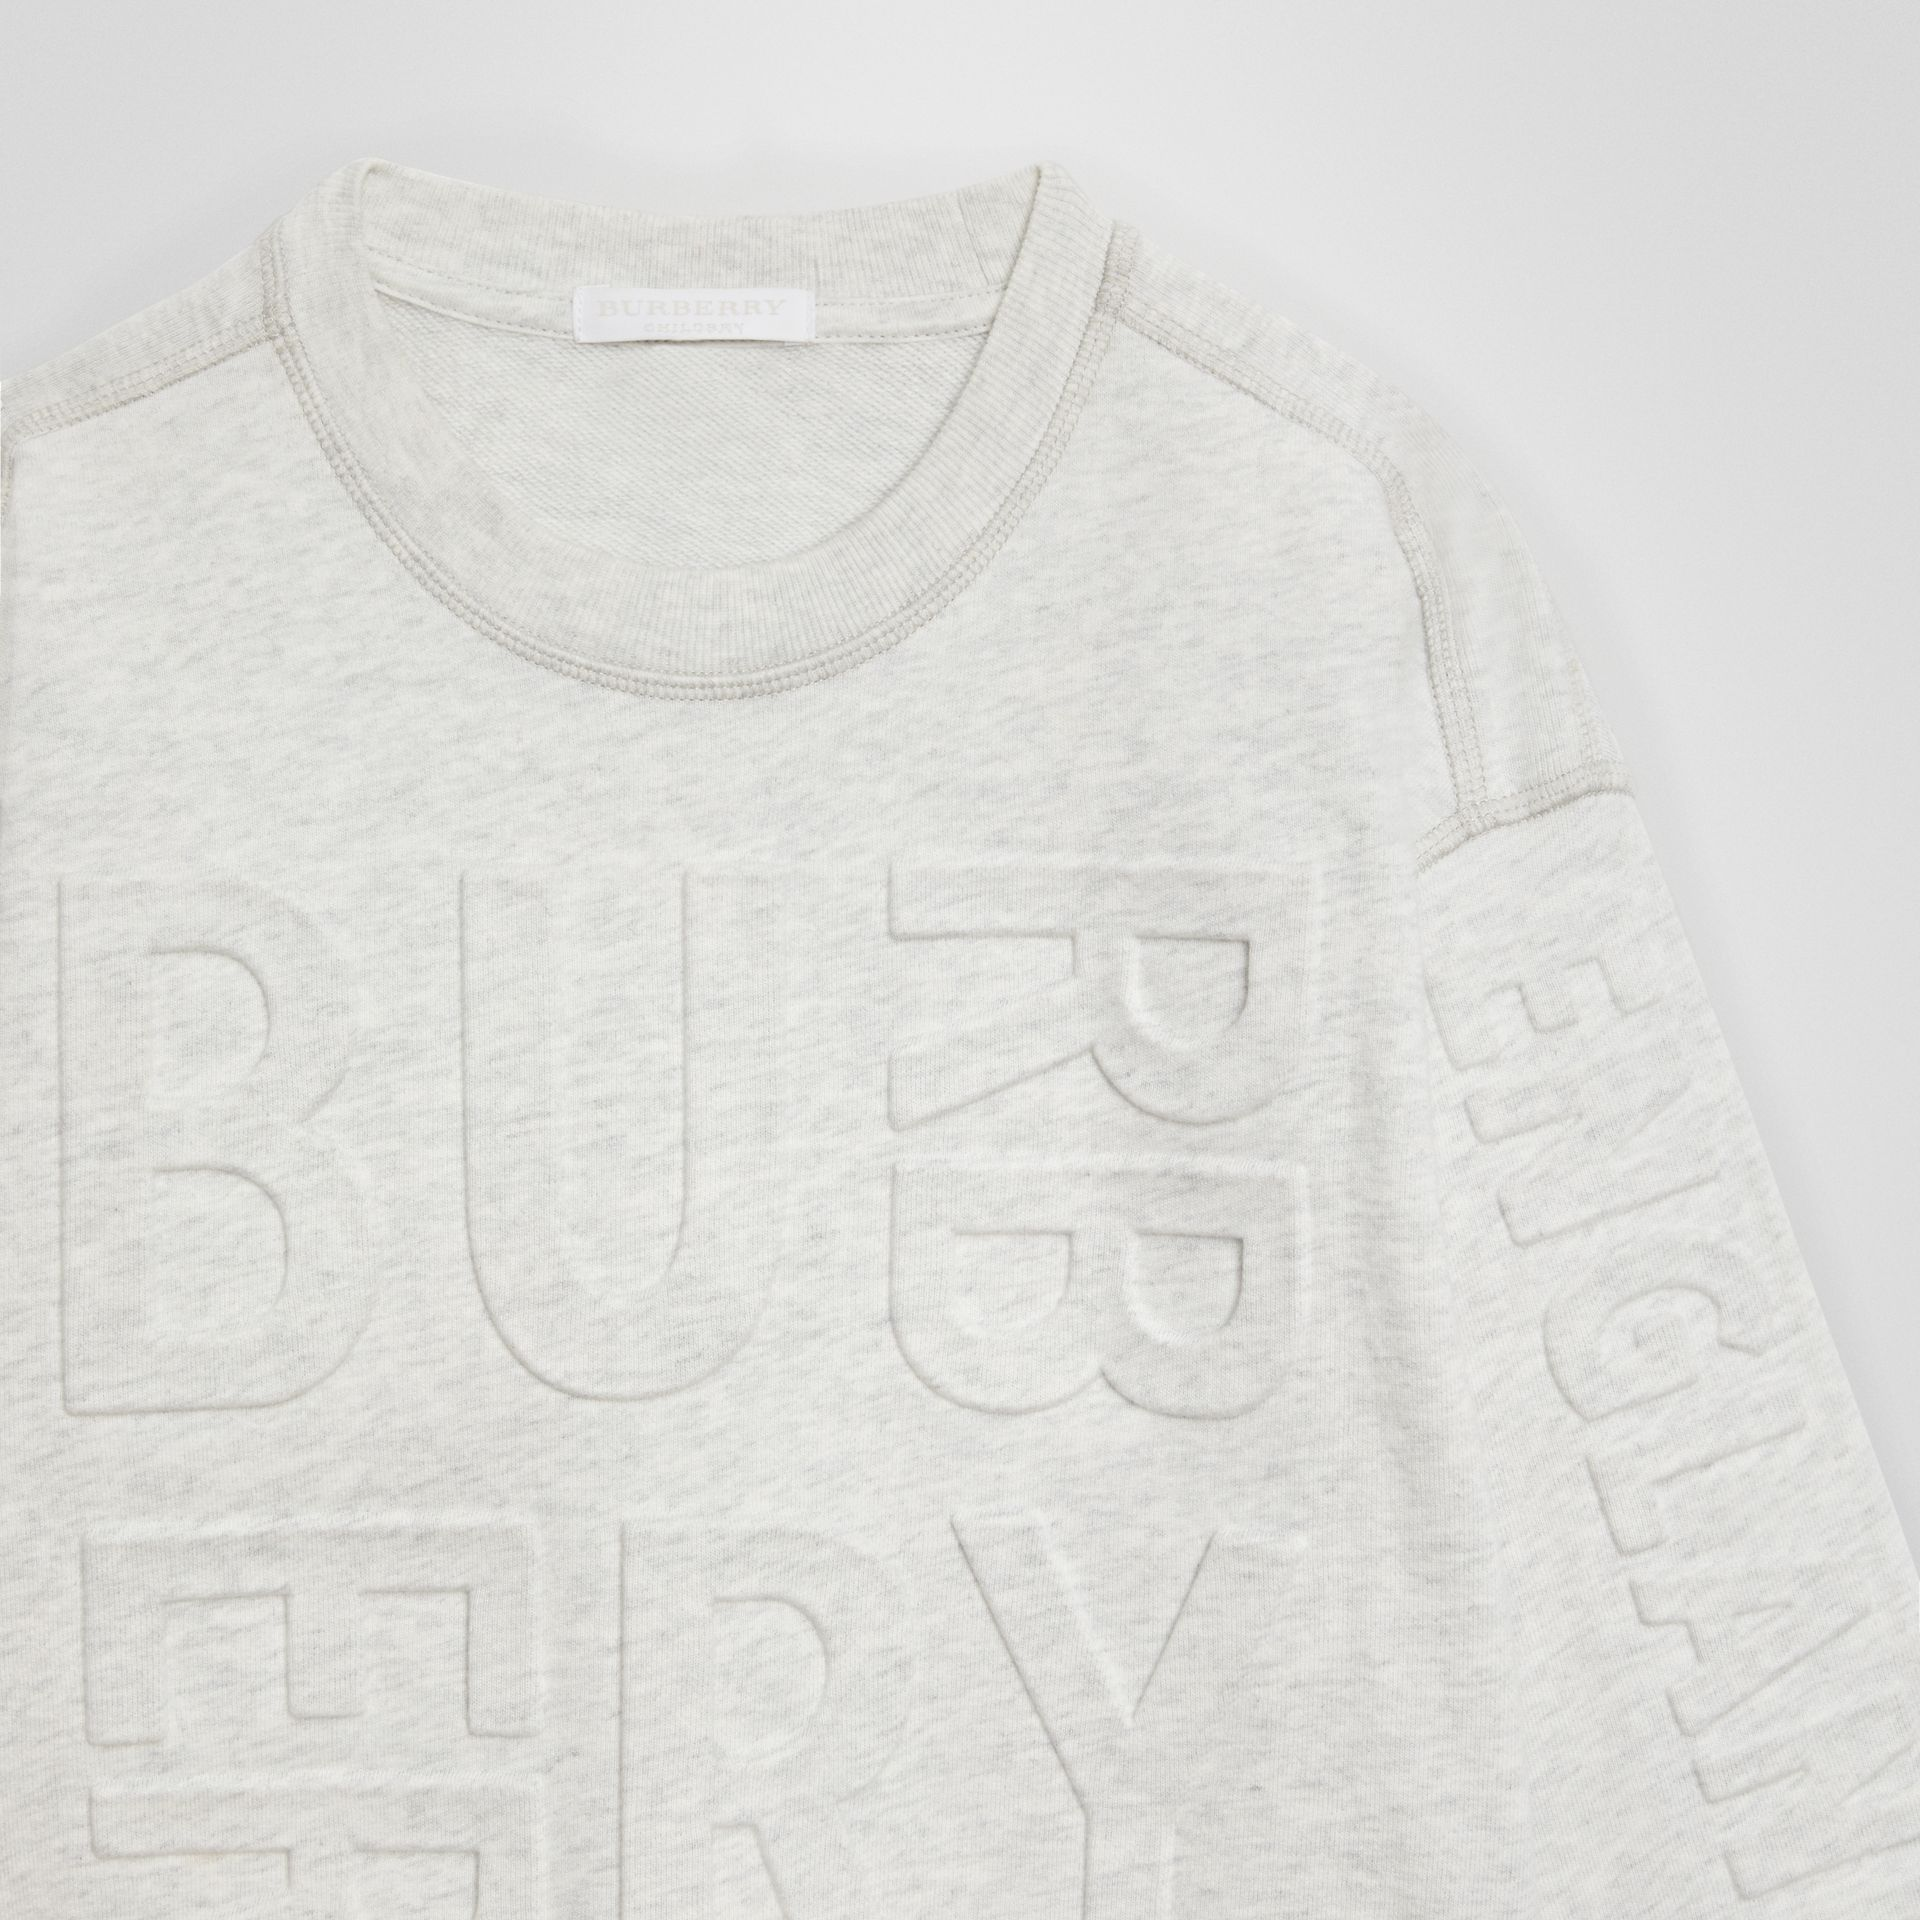 Sweat-shirt en coton avec logo estampé (Camaïeu De Blancs) | Burberry Canada - photo de la galerie 4